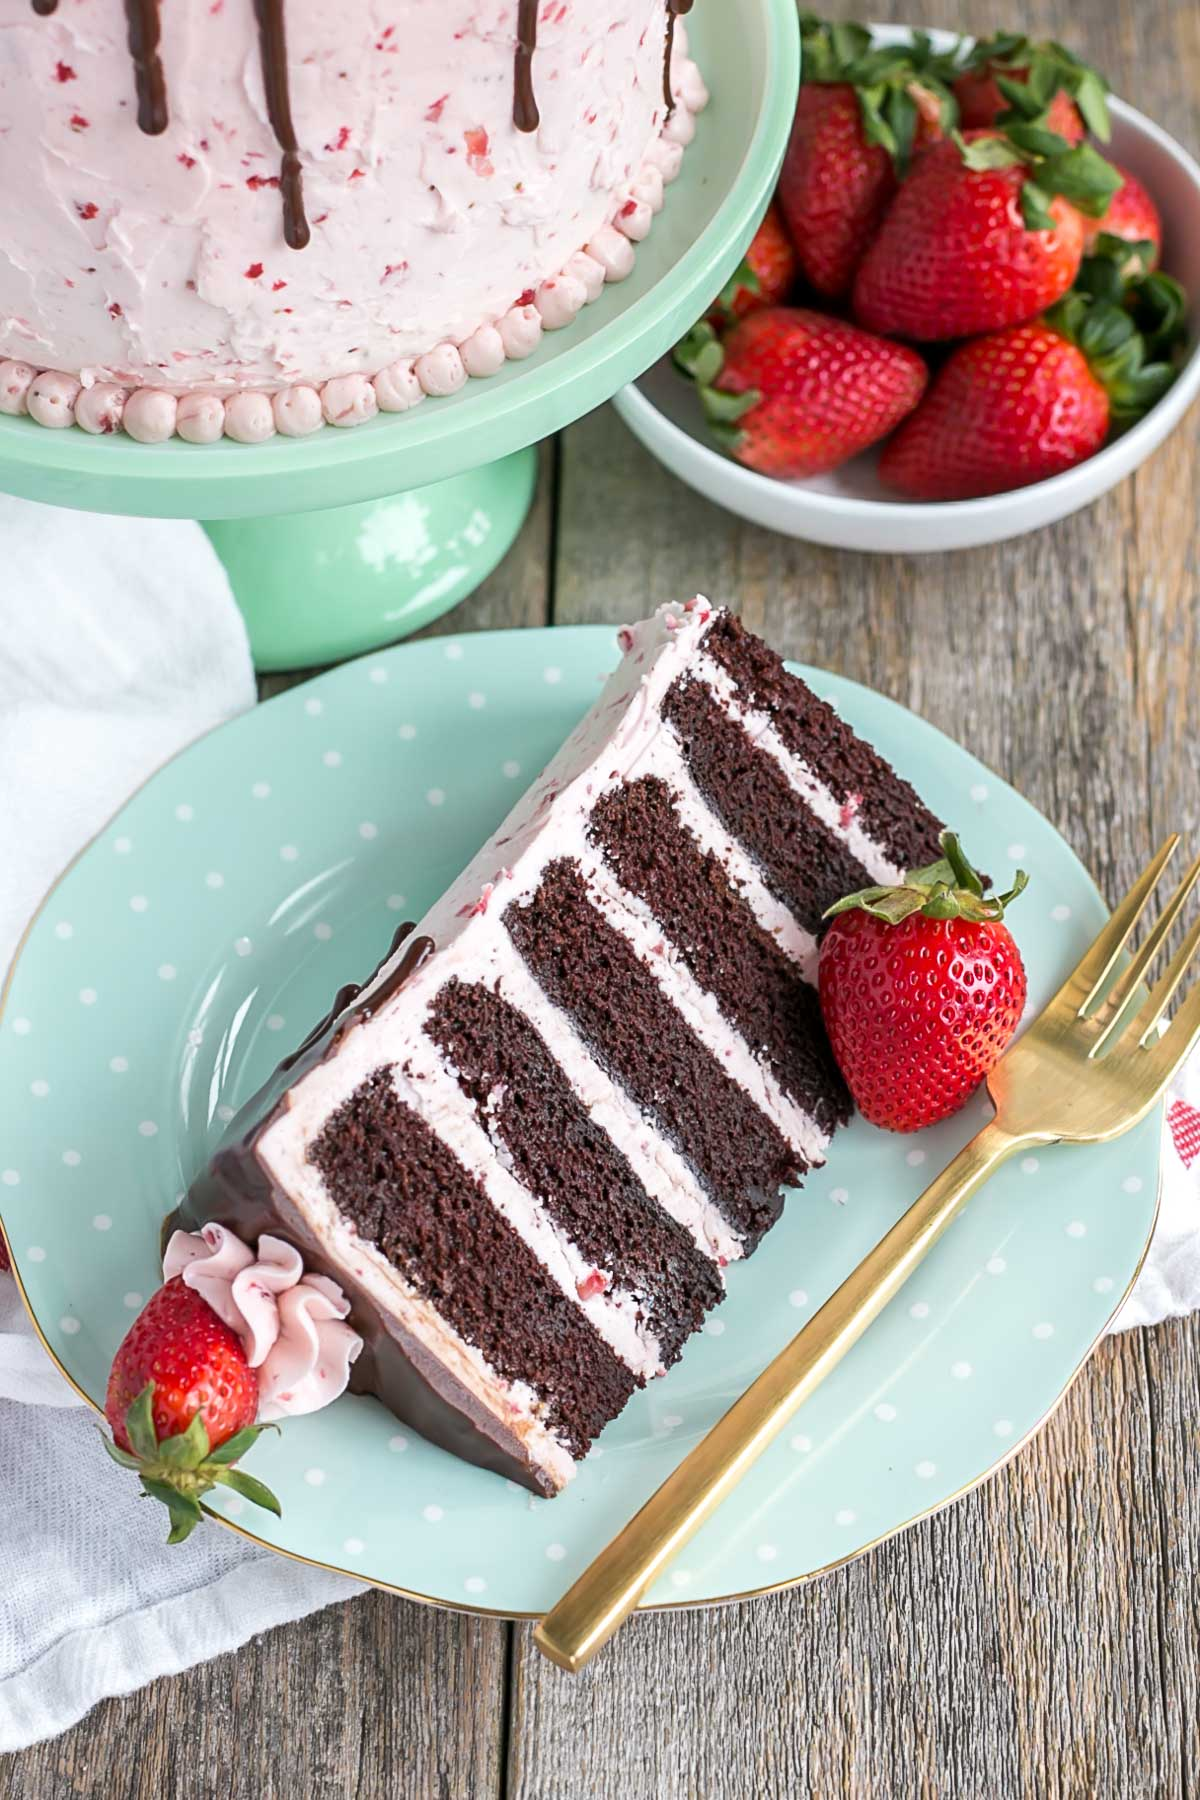 Take chocolate dipped strawberries to the next level with this dreamy Chocolate Strawberry Cake! | livforcake.com